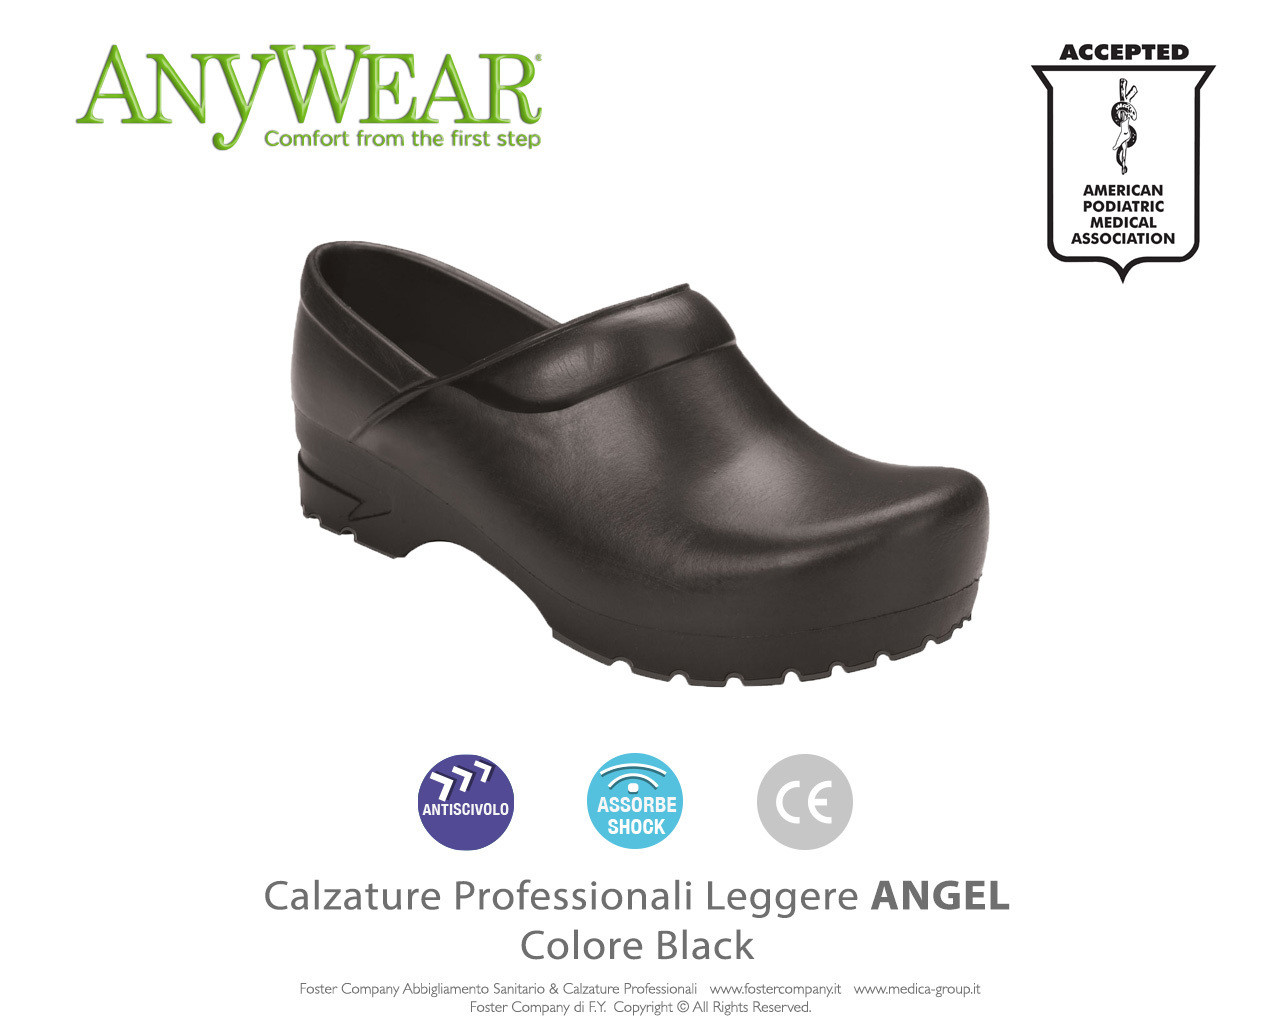 Calzature Professionali Anywear ANGEL Colore Black